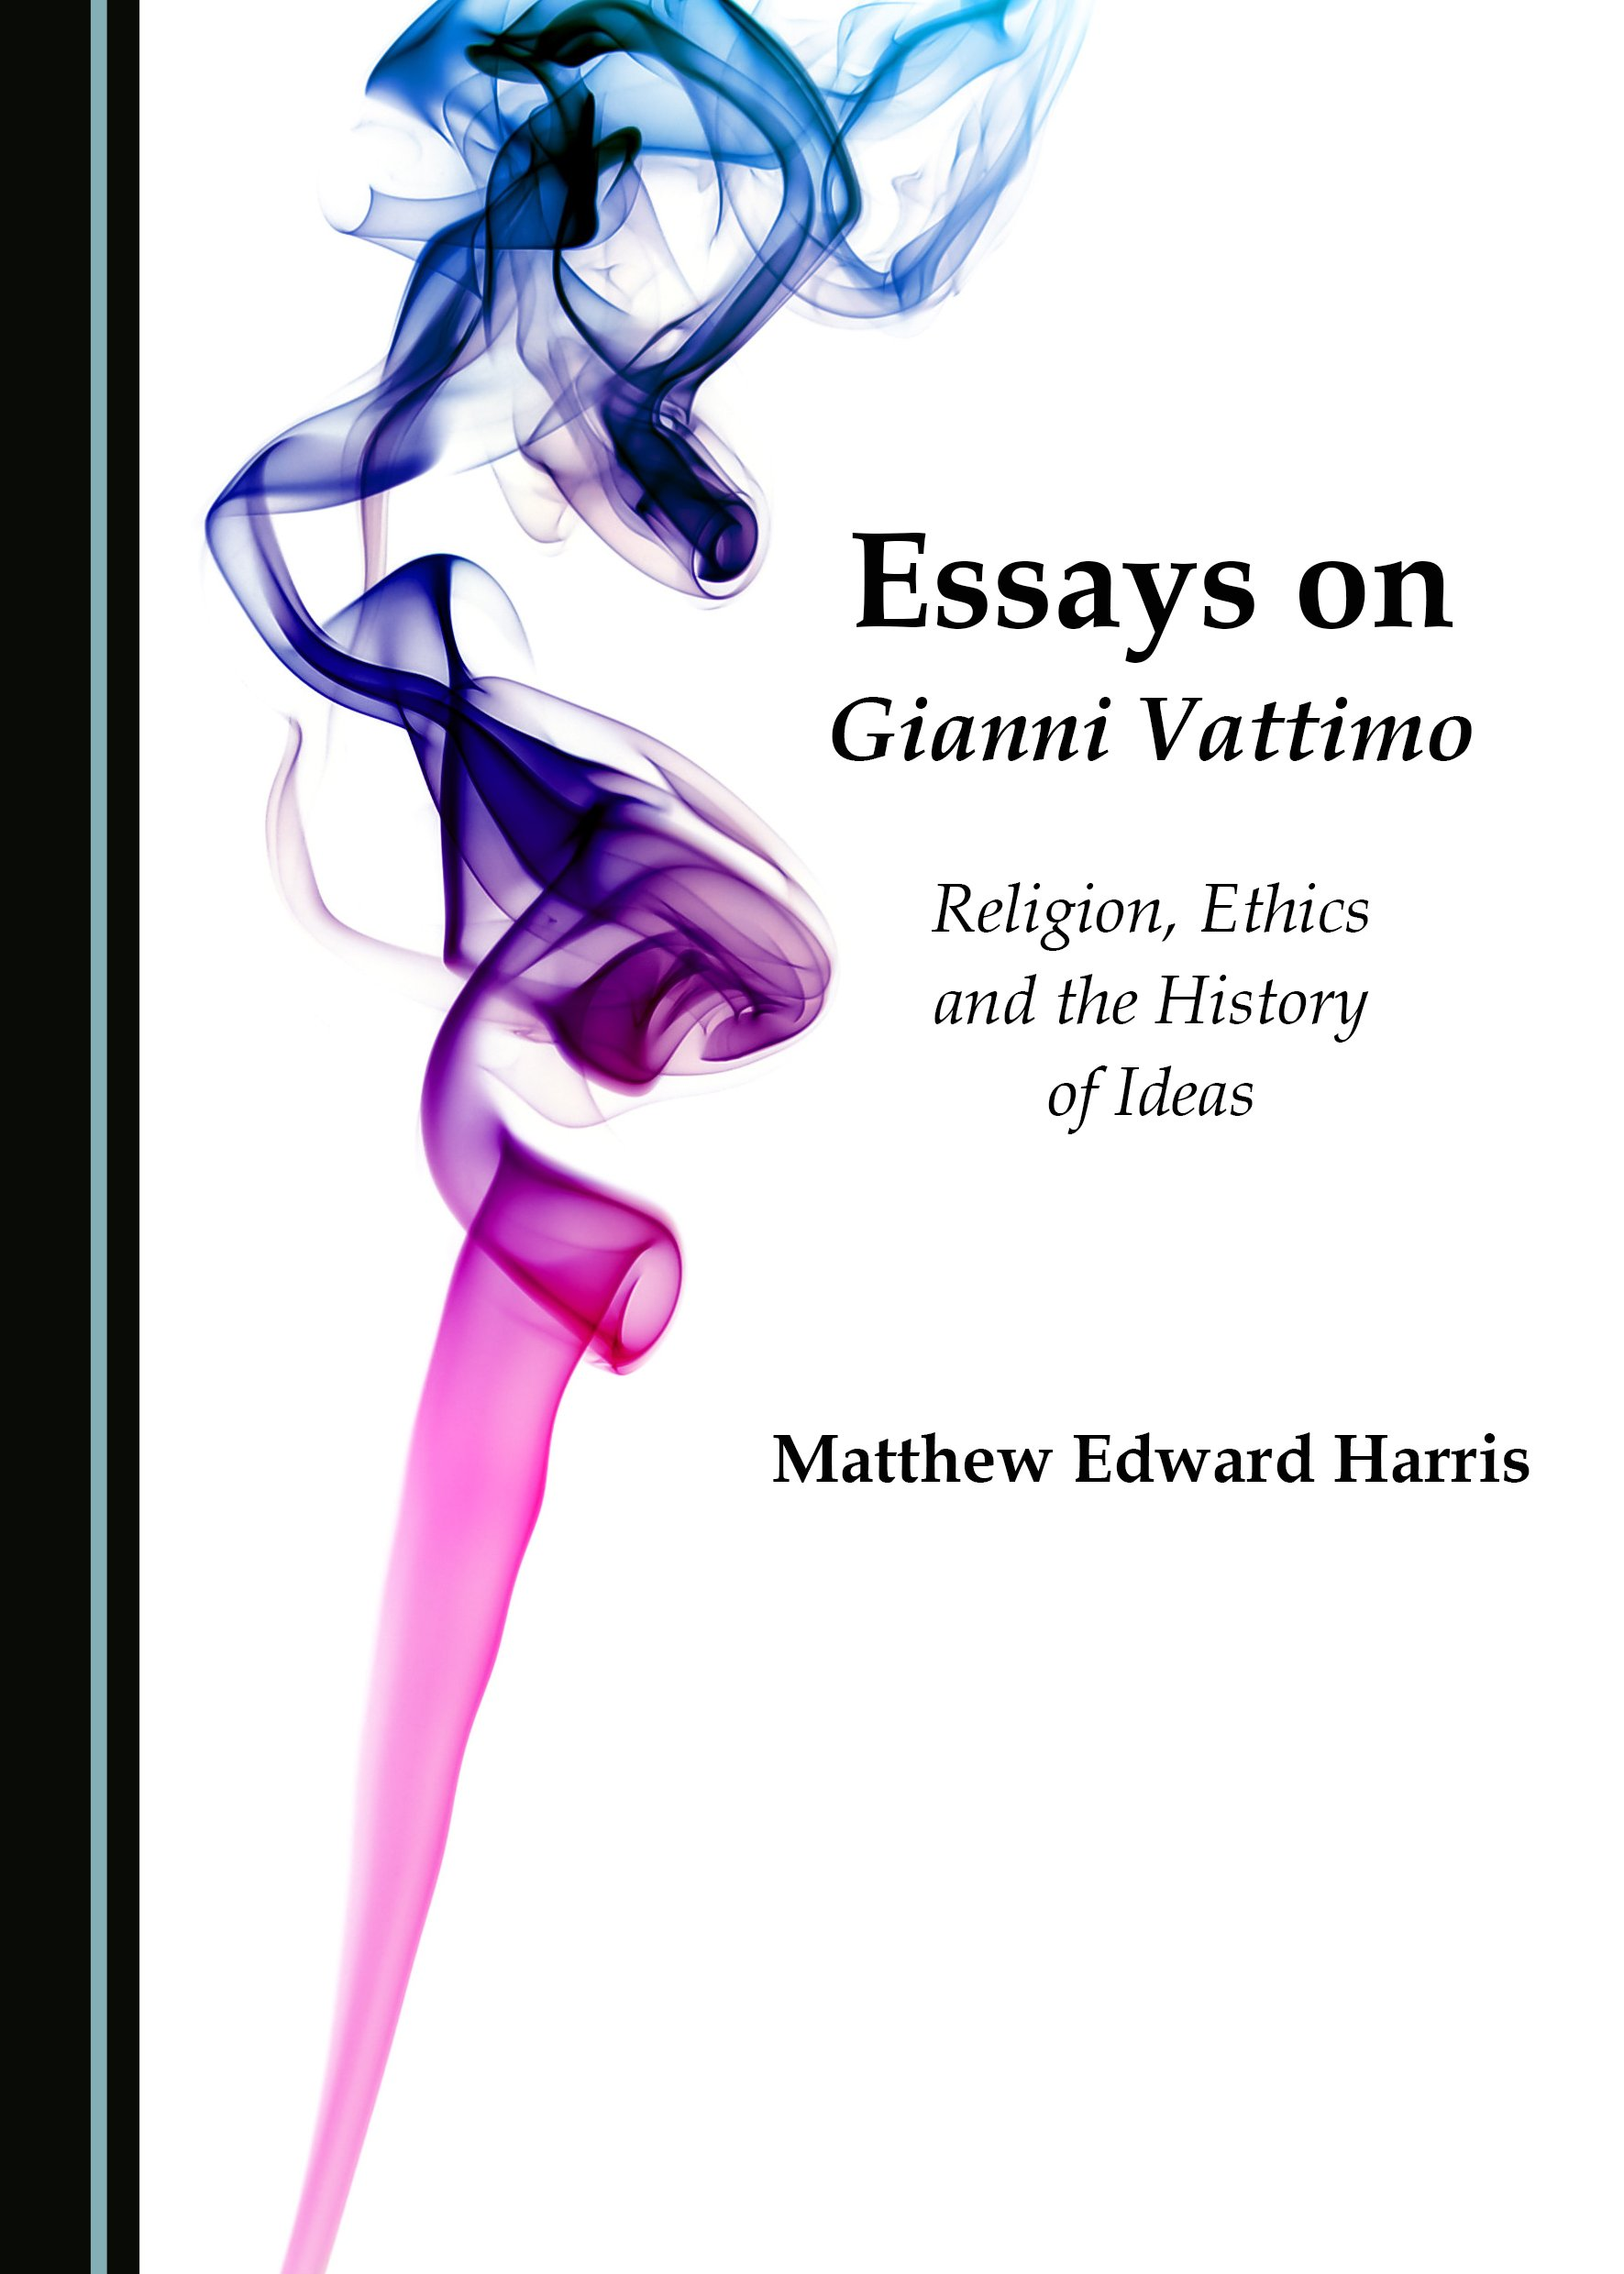 Essays on Gianni Vattimo: Religion, Ethics and the History of Ideas